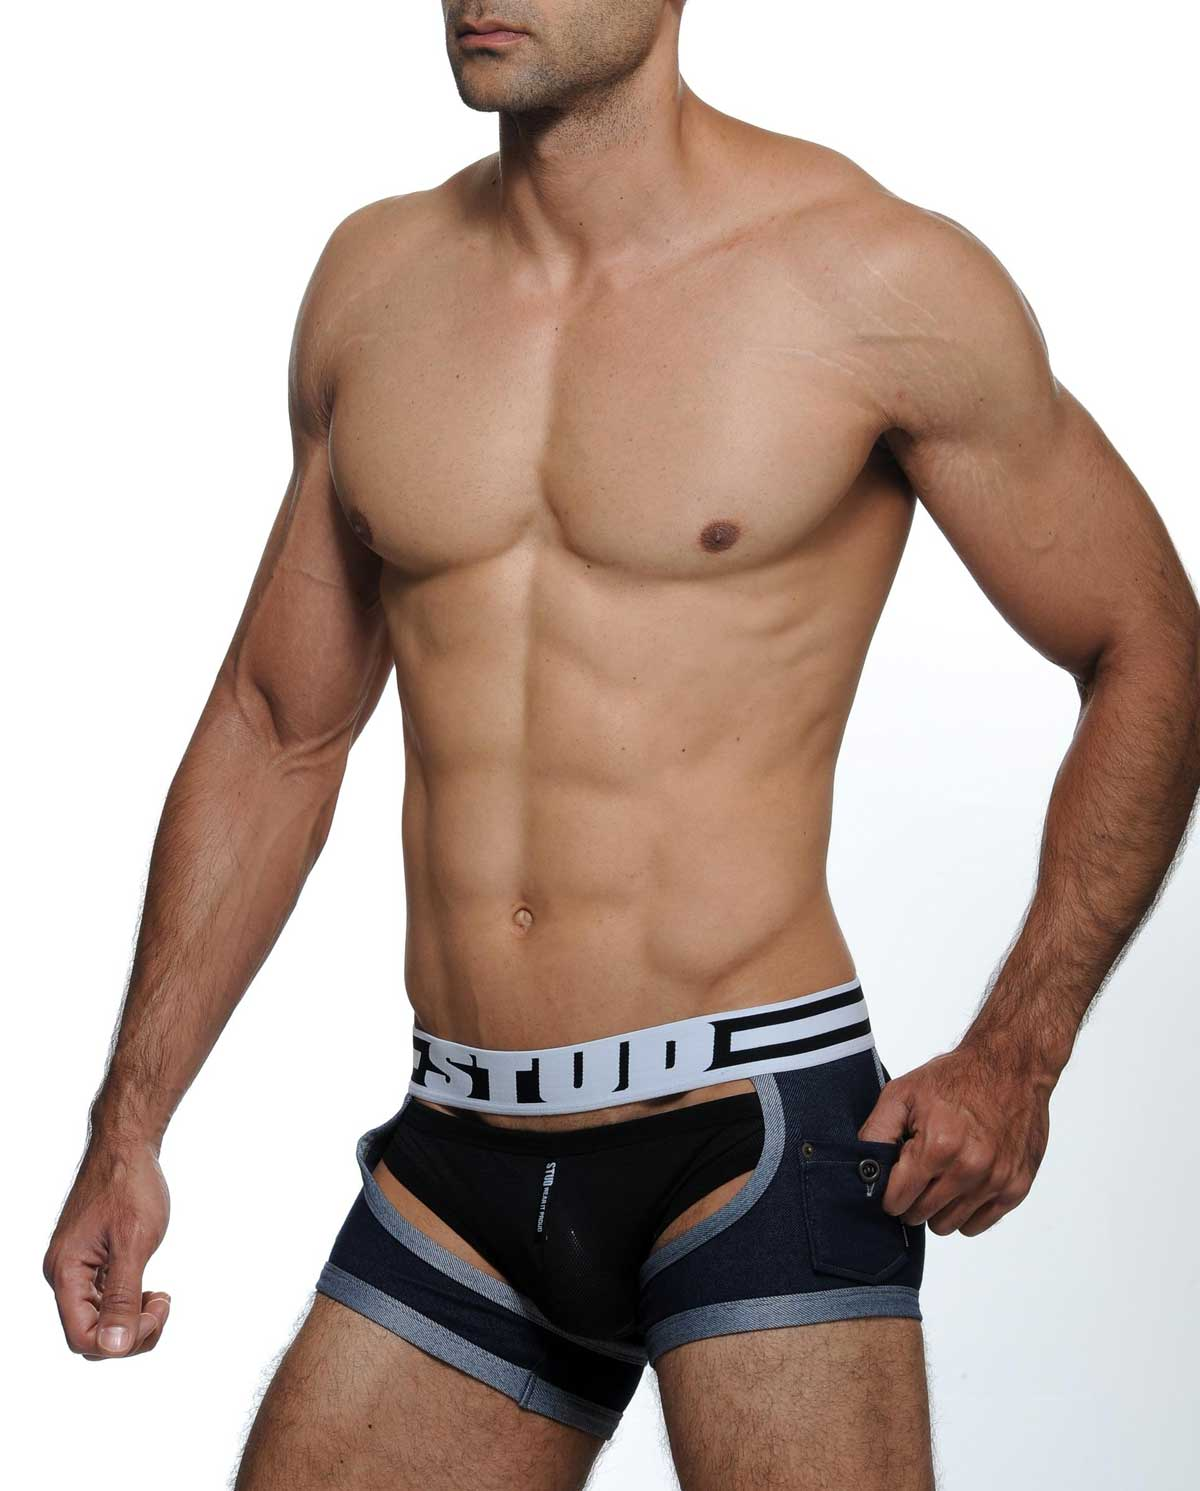 Male model wearing STUD Underwear Joust Trunks available at MensUnderwear.io